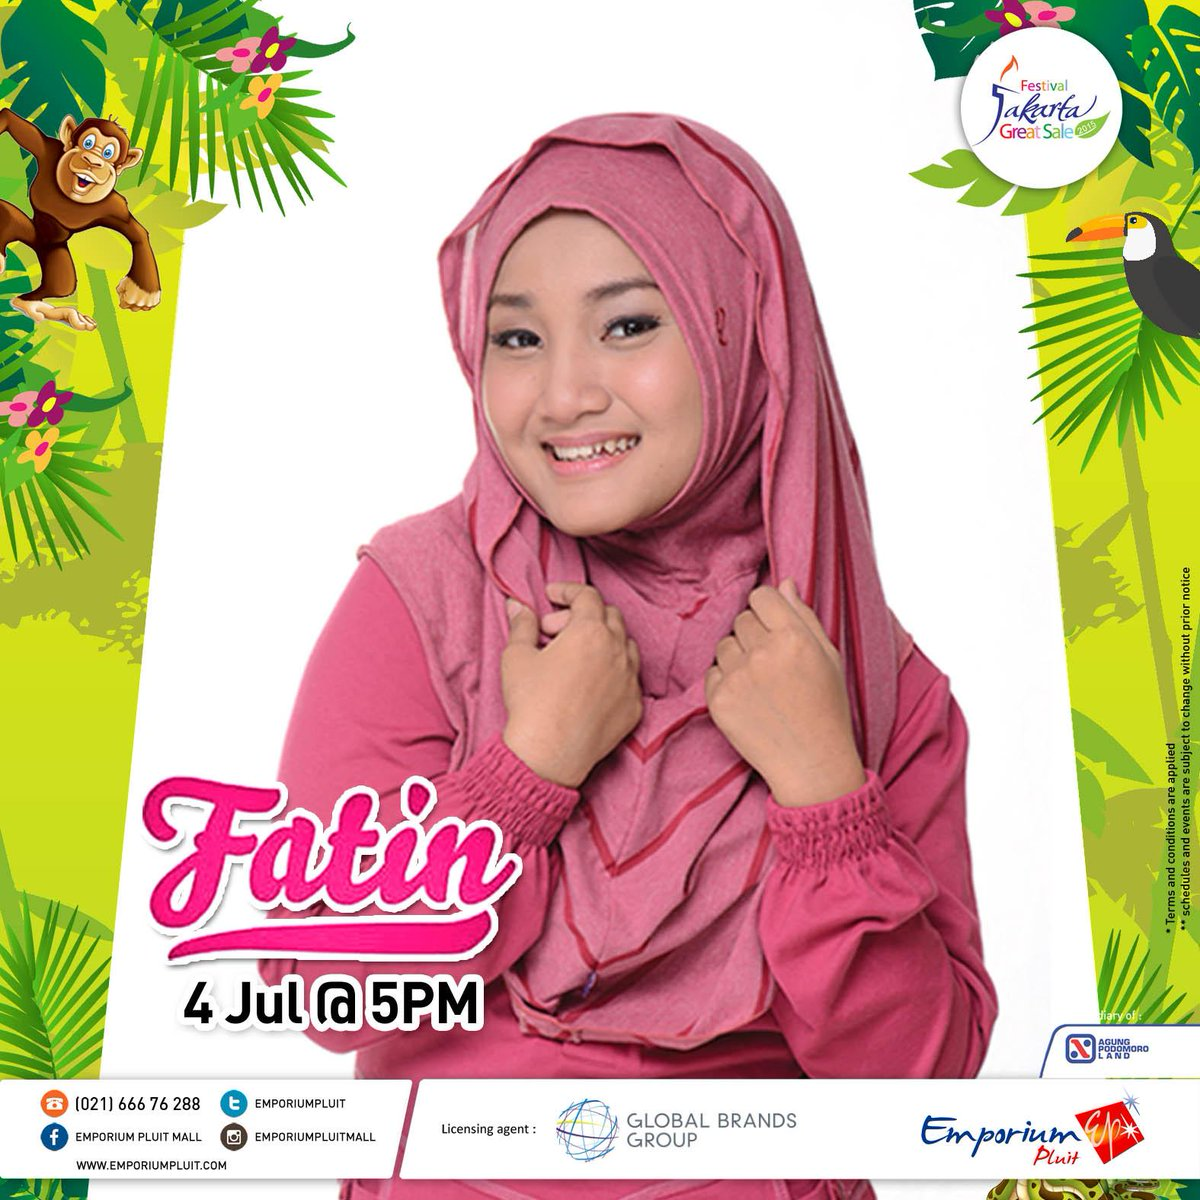 Tomorrow! Special performance by @FatinSL on 4 Jul 2015 at 5 PM. Don't miss it ;) #FatinConcert #framadhan #FansFatin http://t.co/ZID7nN73kN